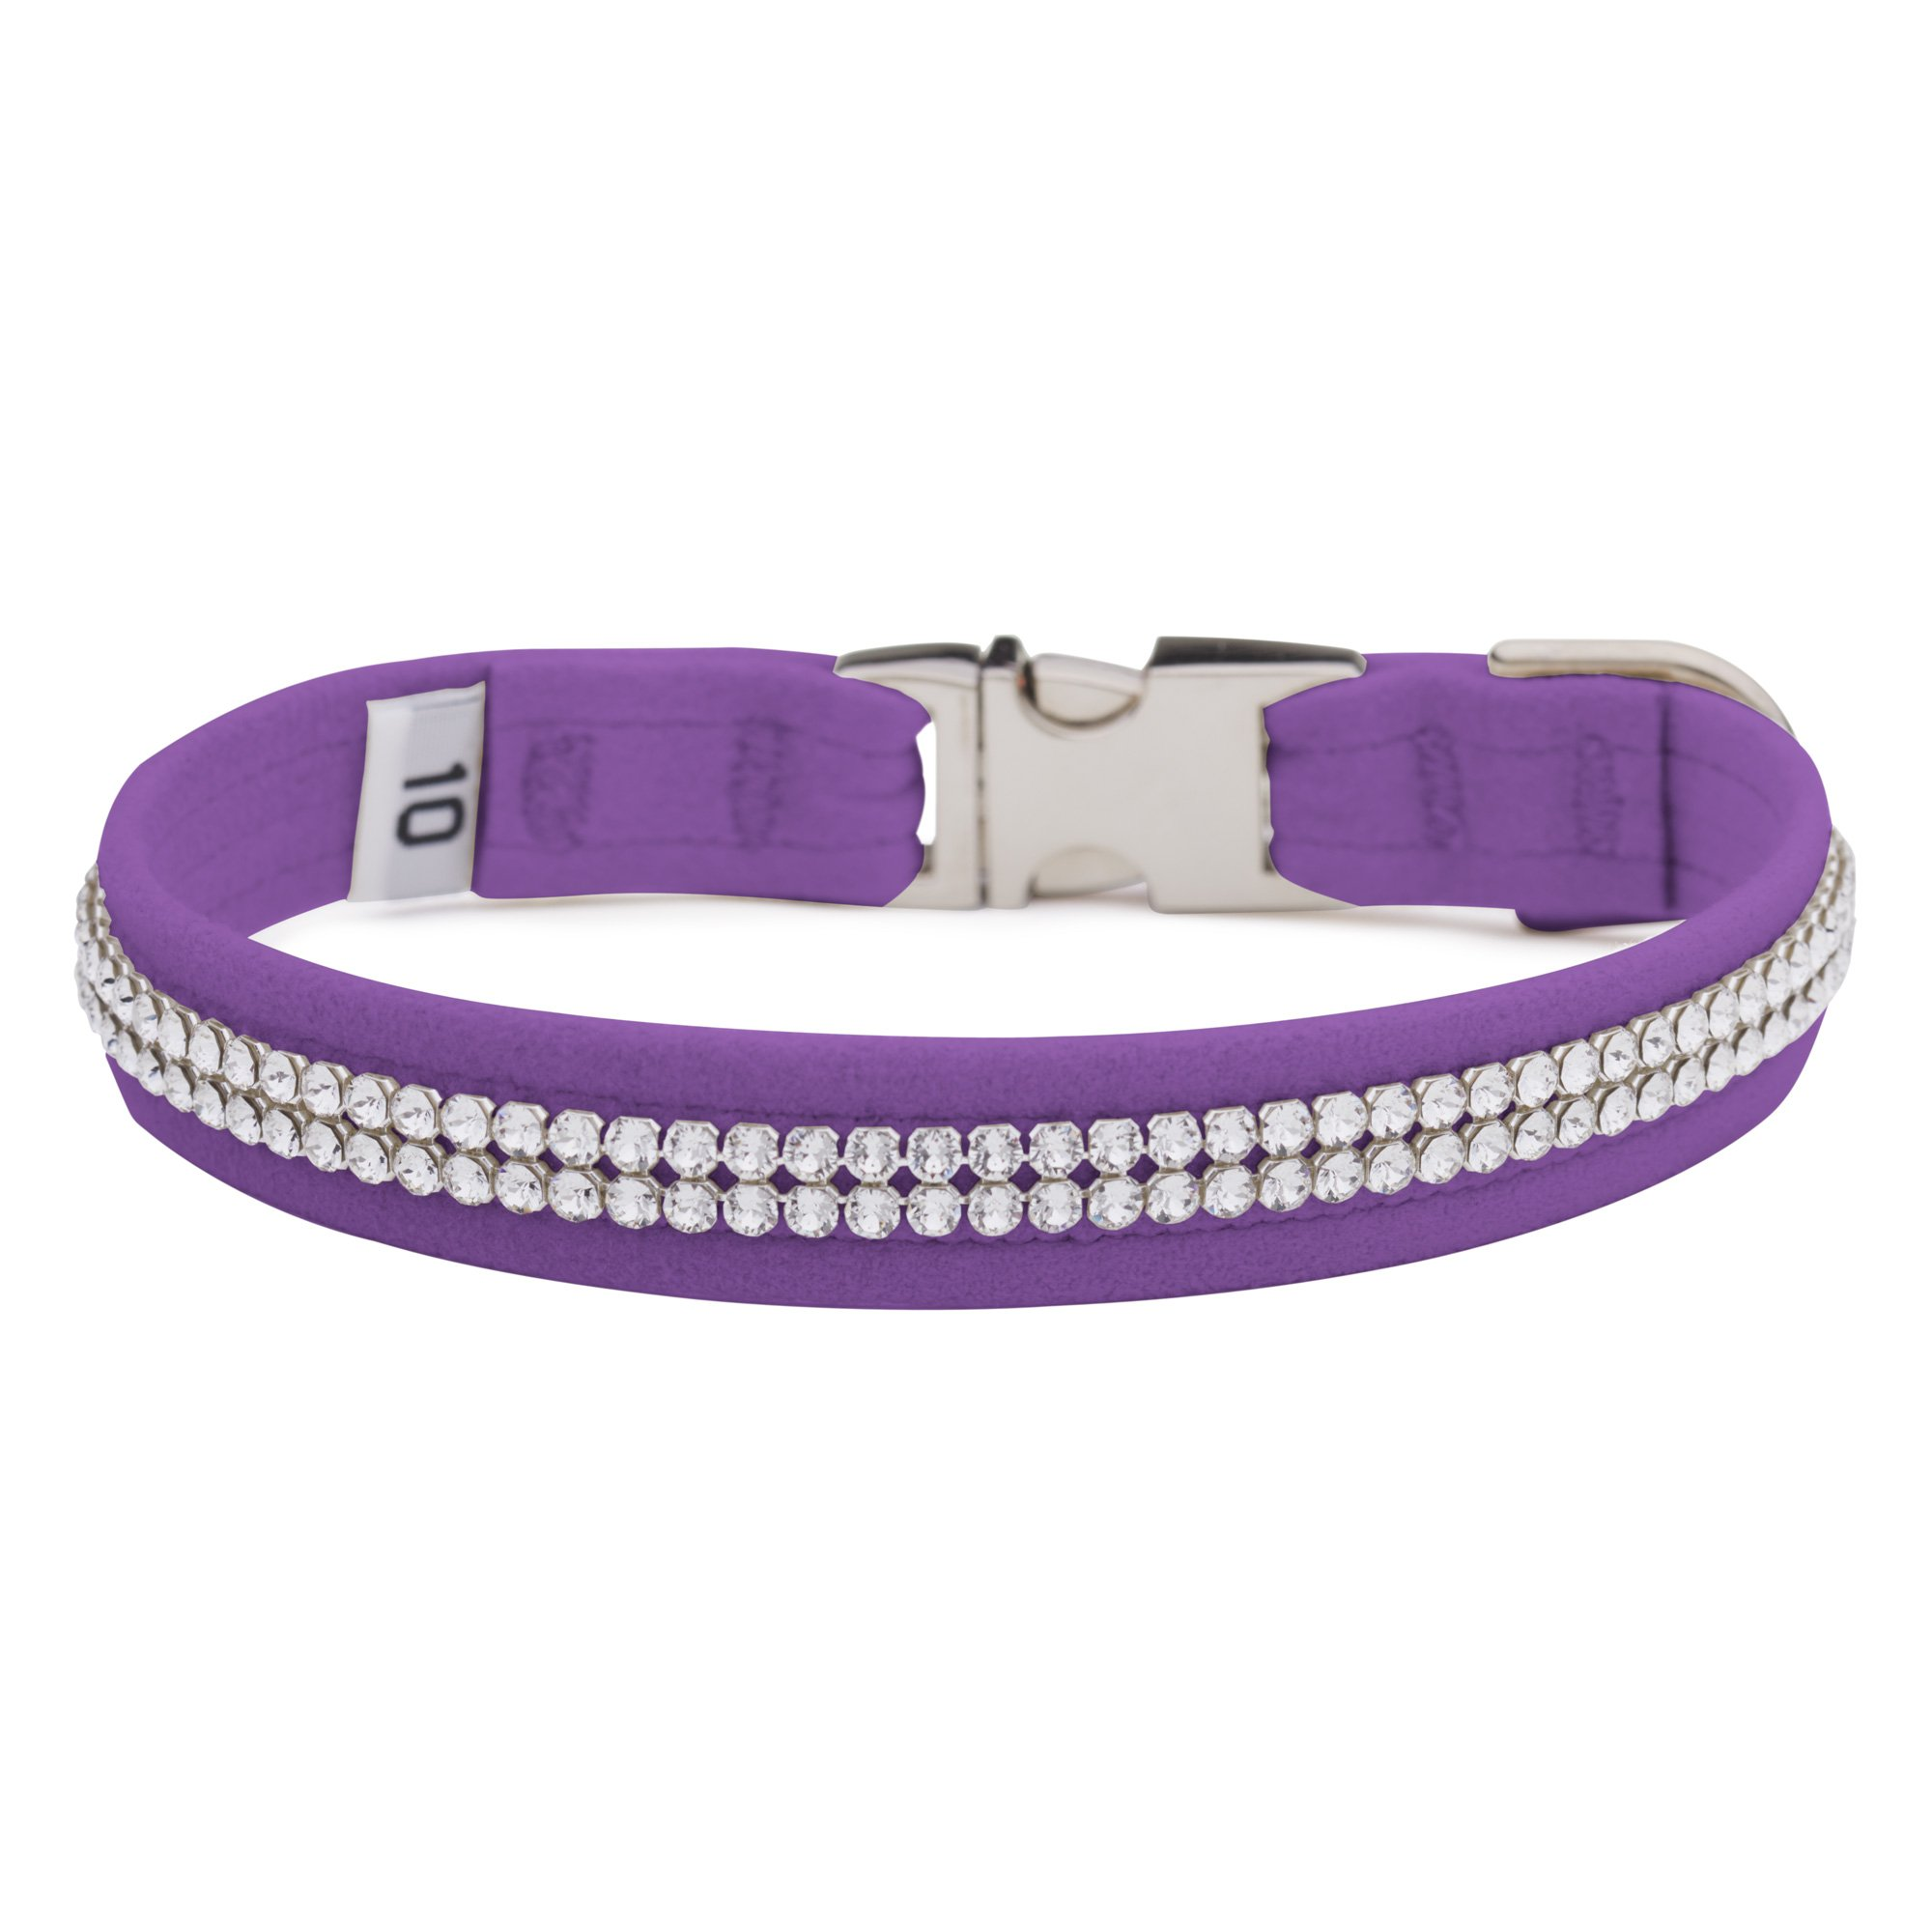 Ultraviolet 2 Row Giltmore Perfect Fit Collar